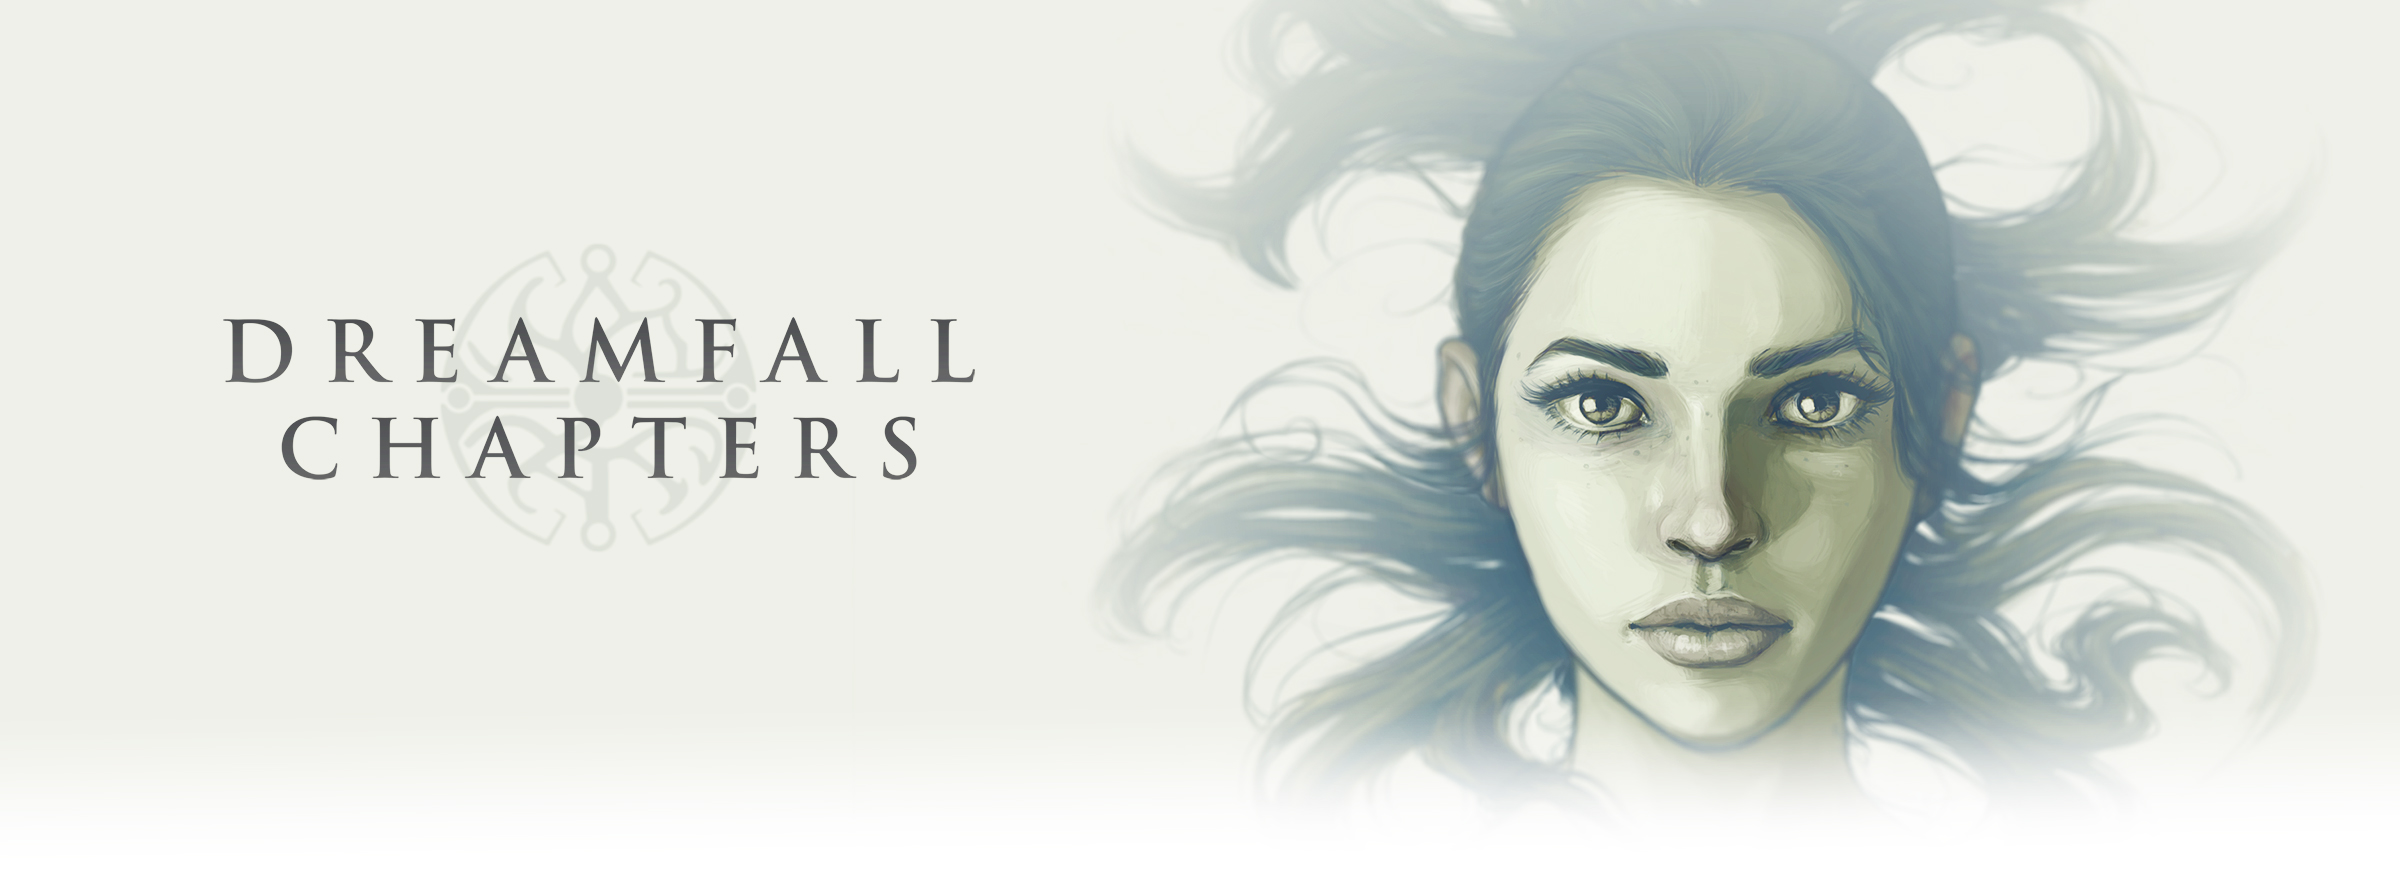 dreamfall-chapters